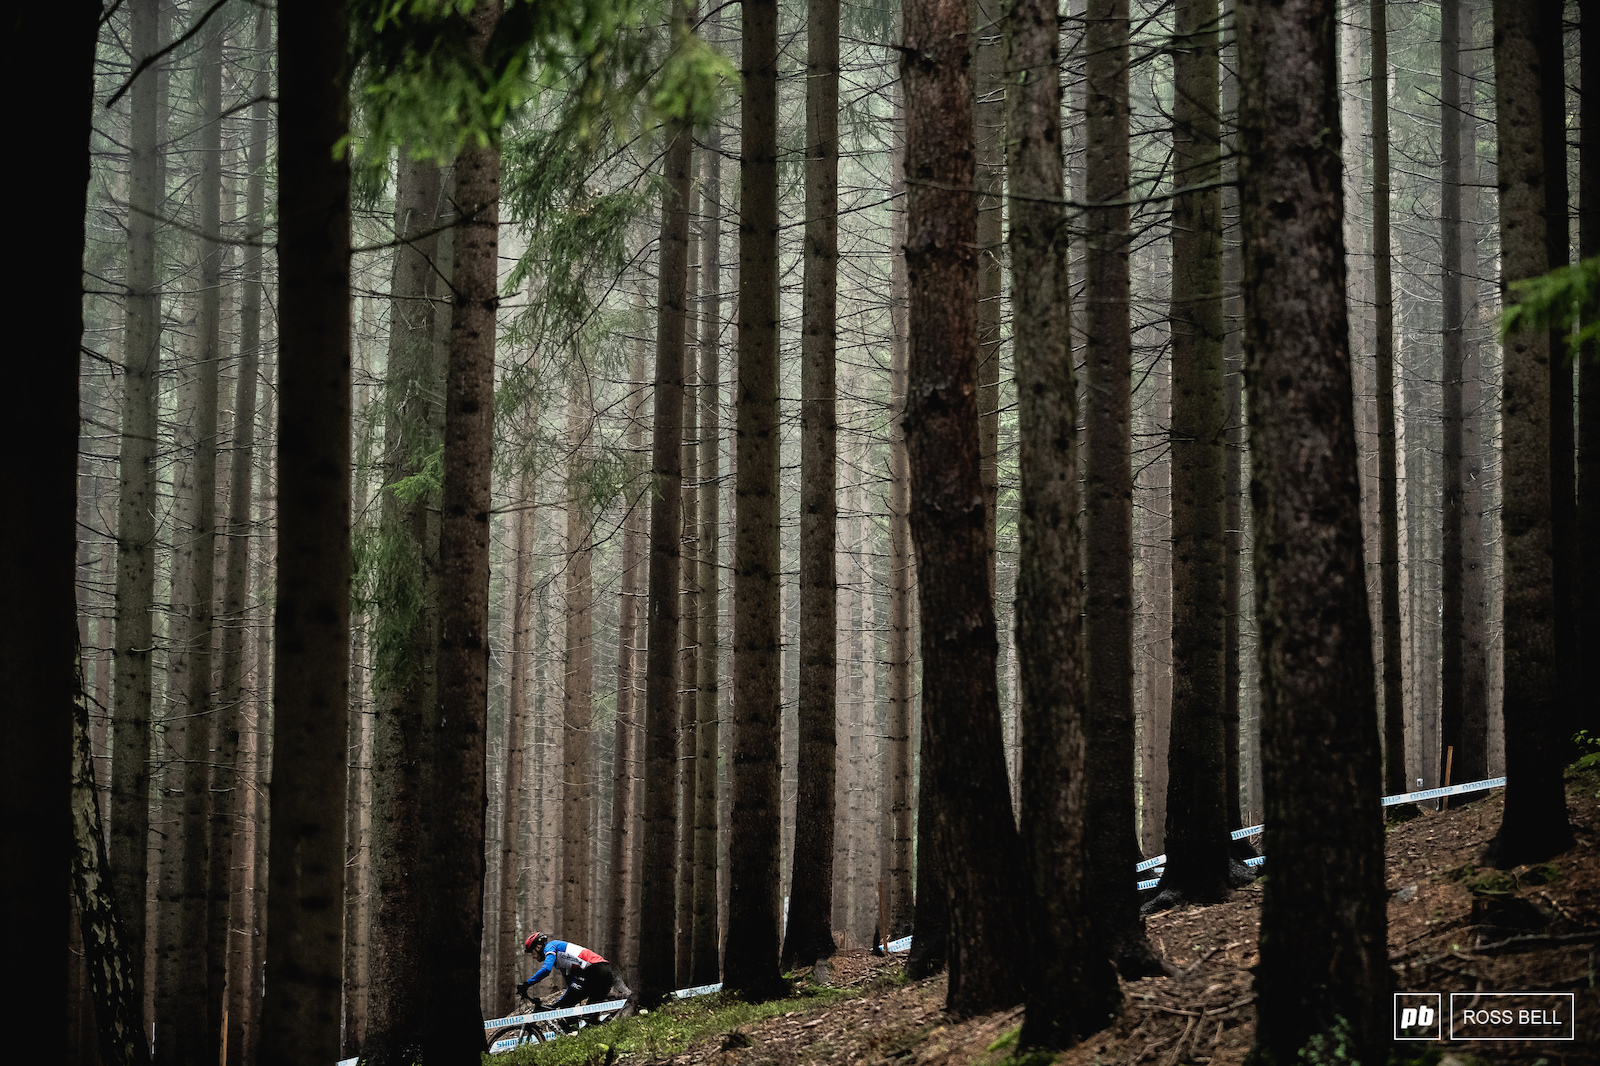 The woods of Nove Mesto are a rather quaint setting for a bike race.